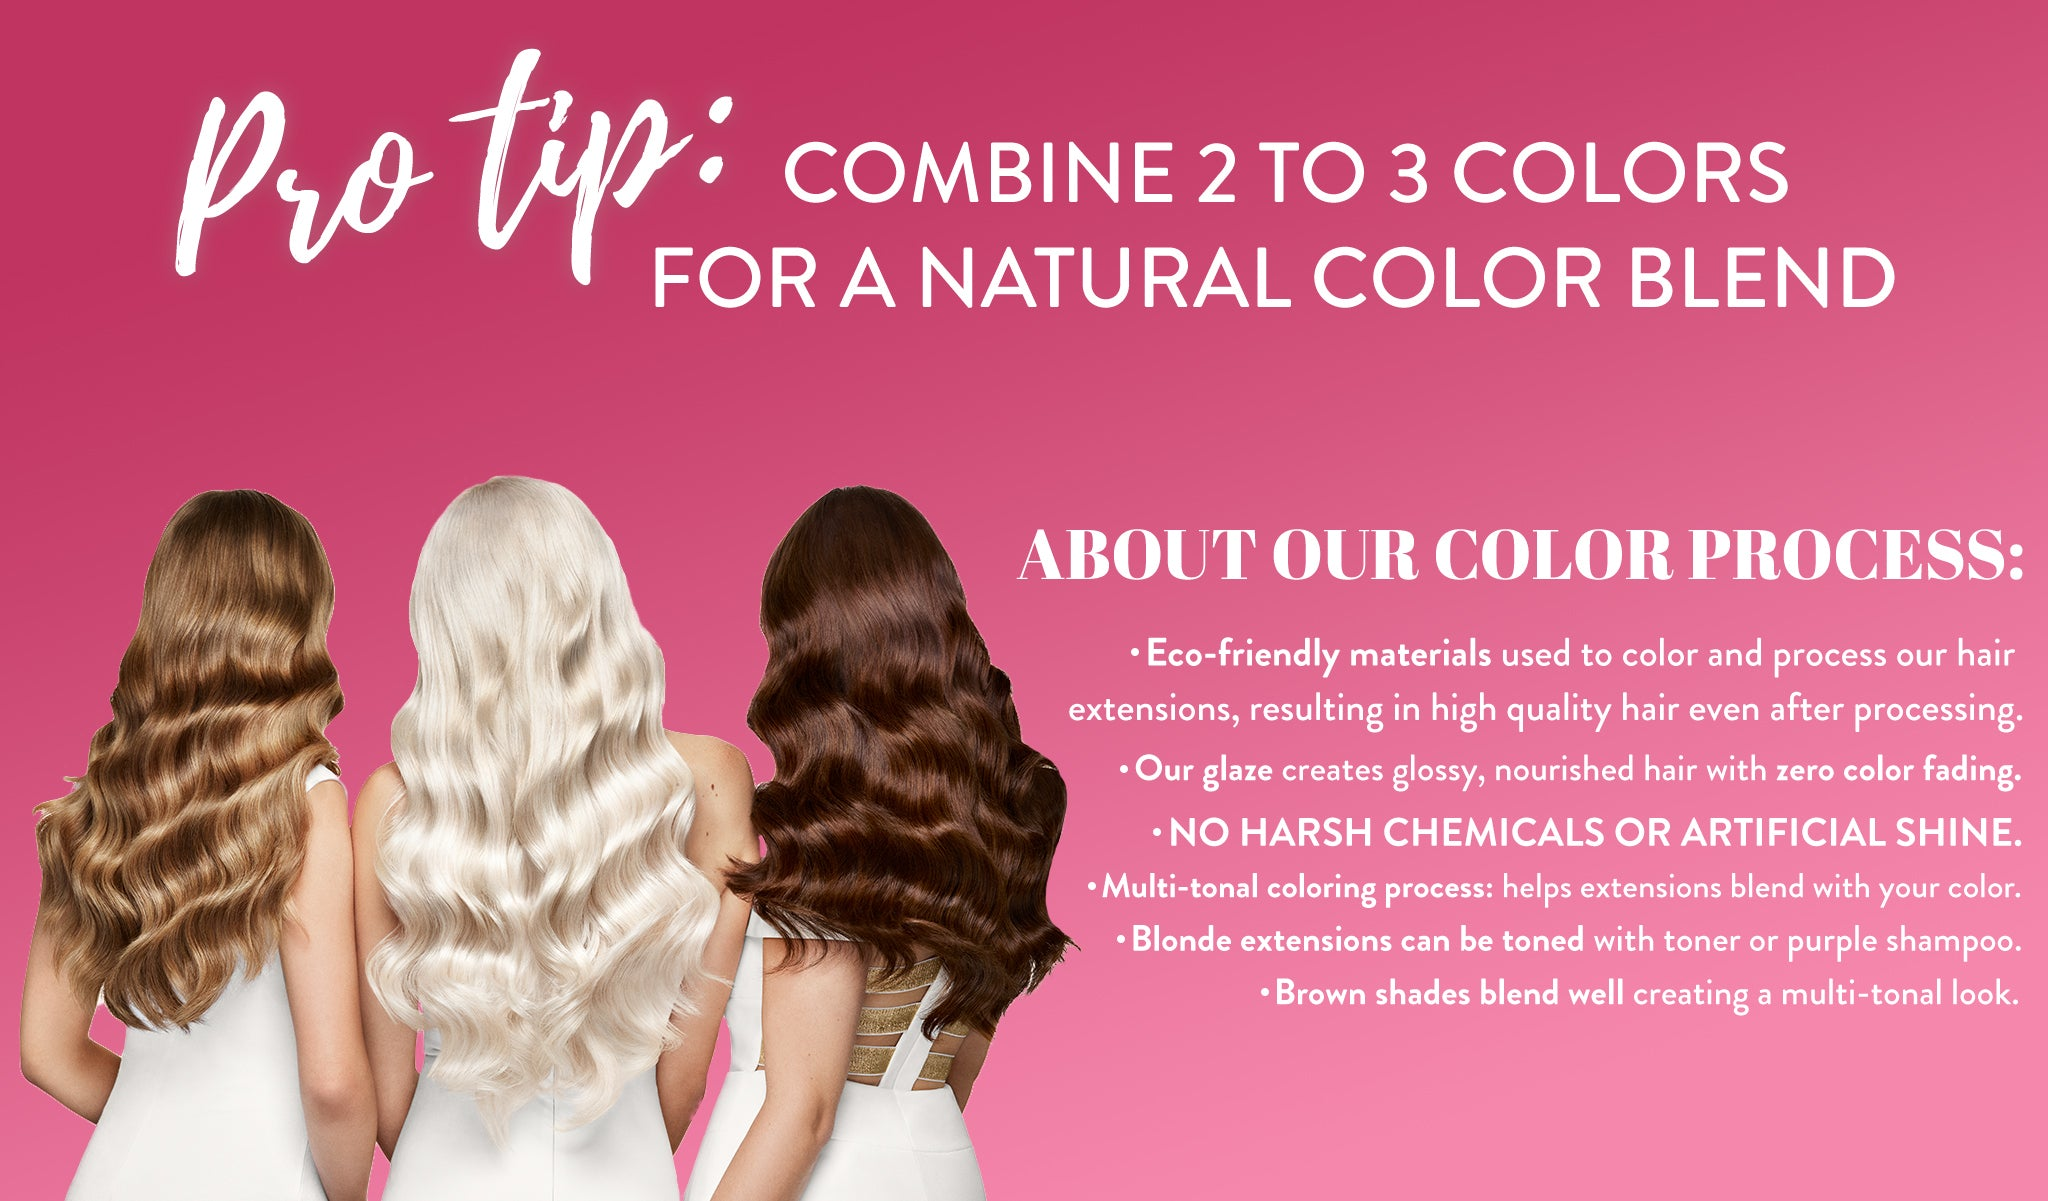 Pro tips for hair extension color matching